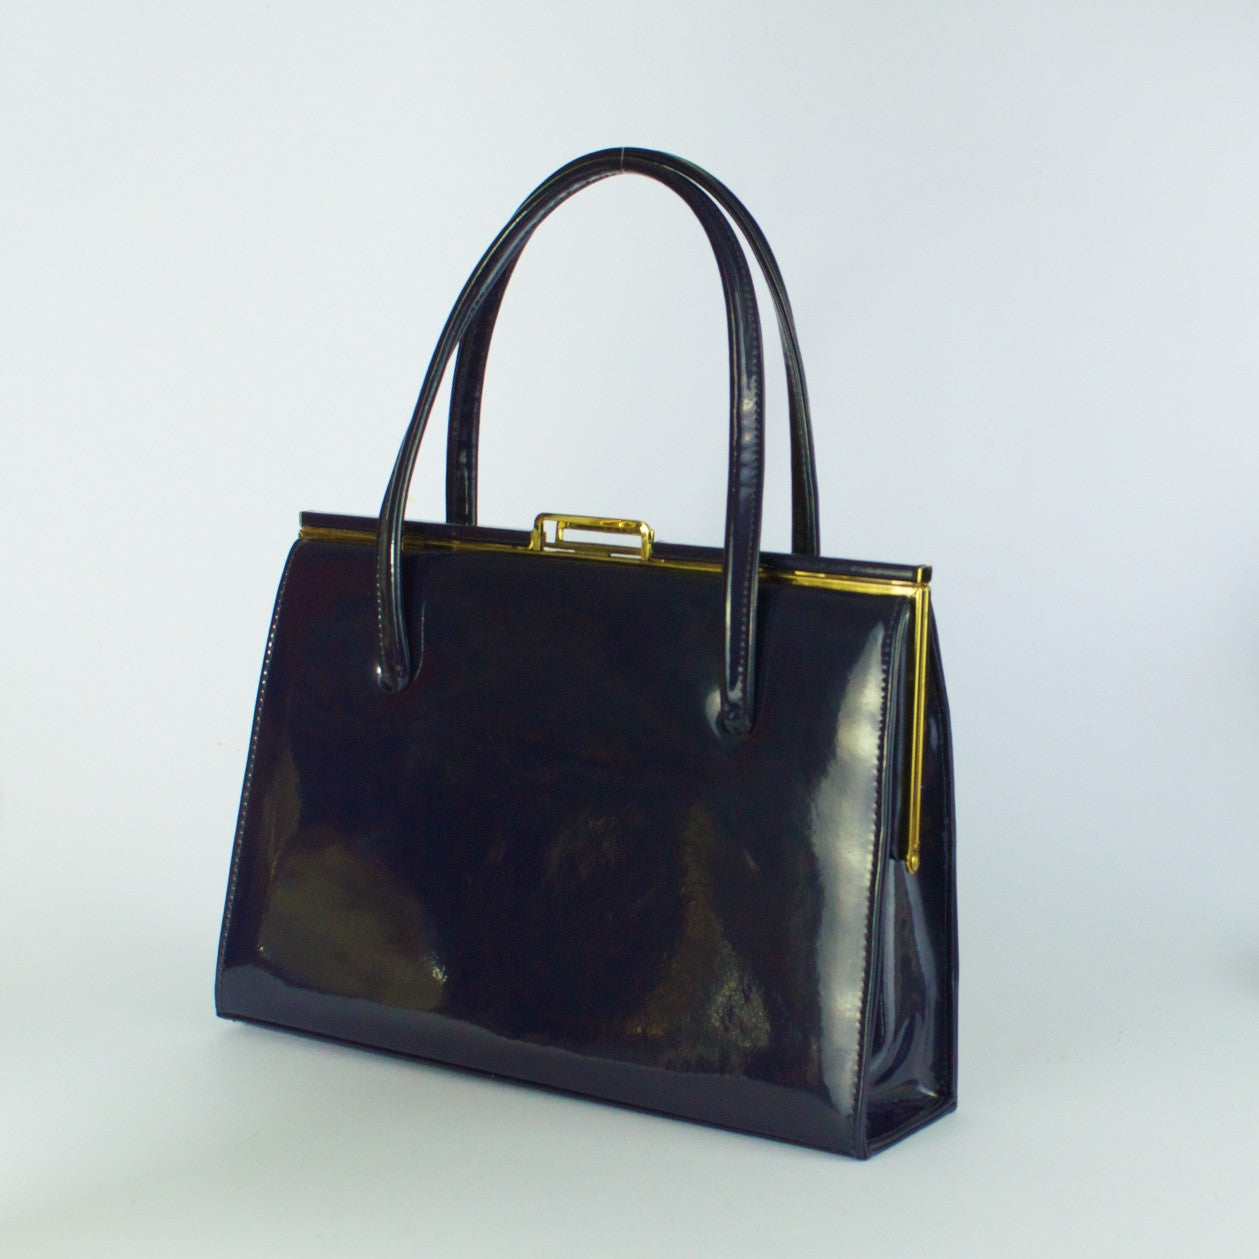 Vintage navy patent leather handbag by Ackery